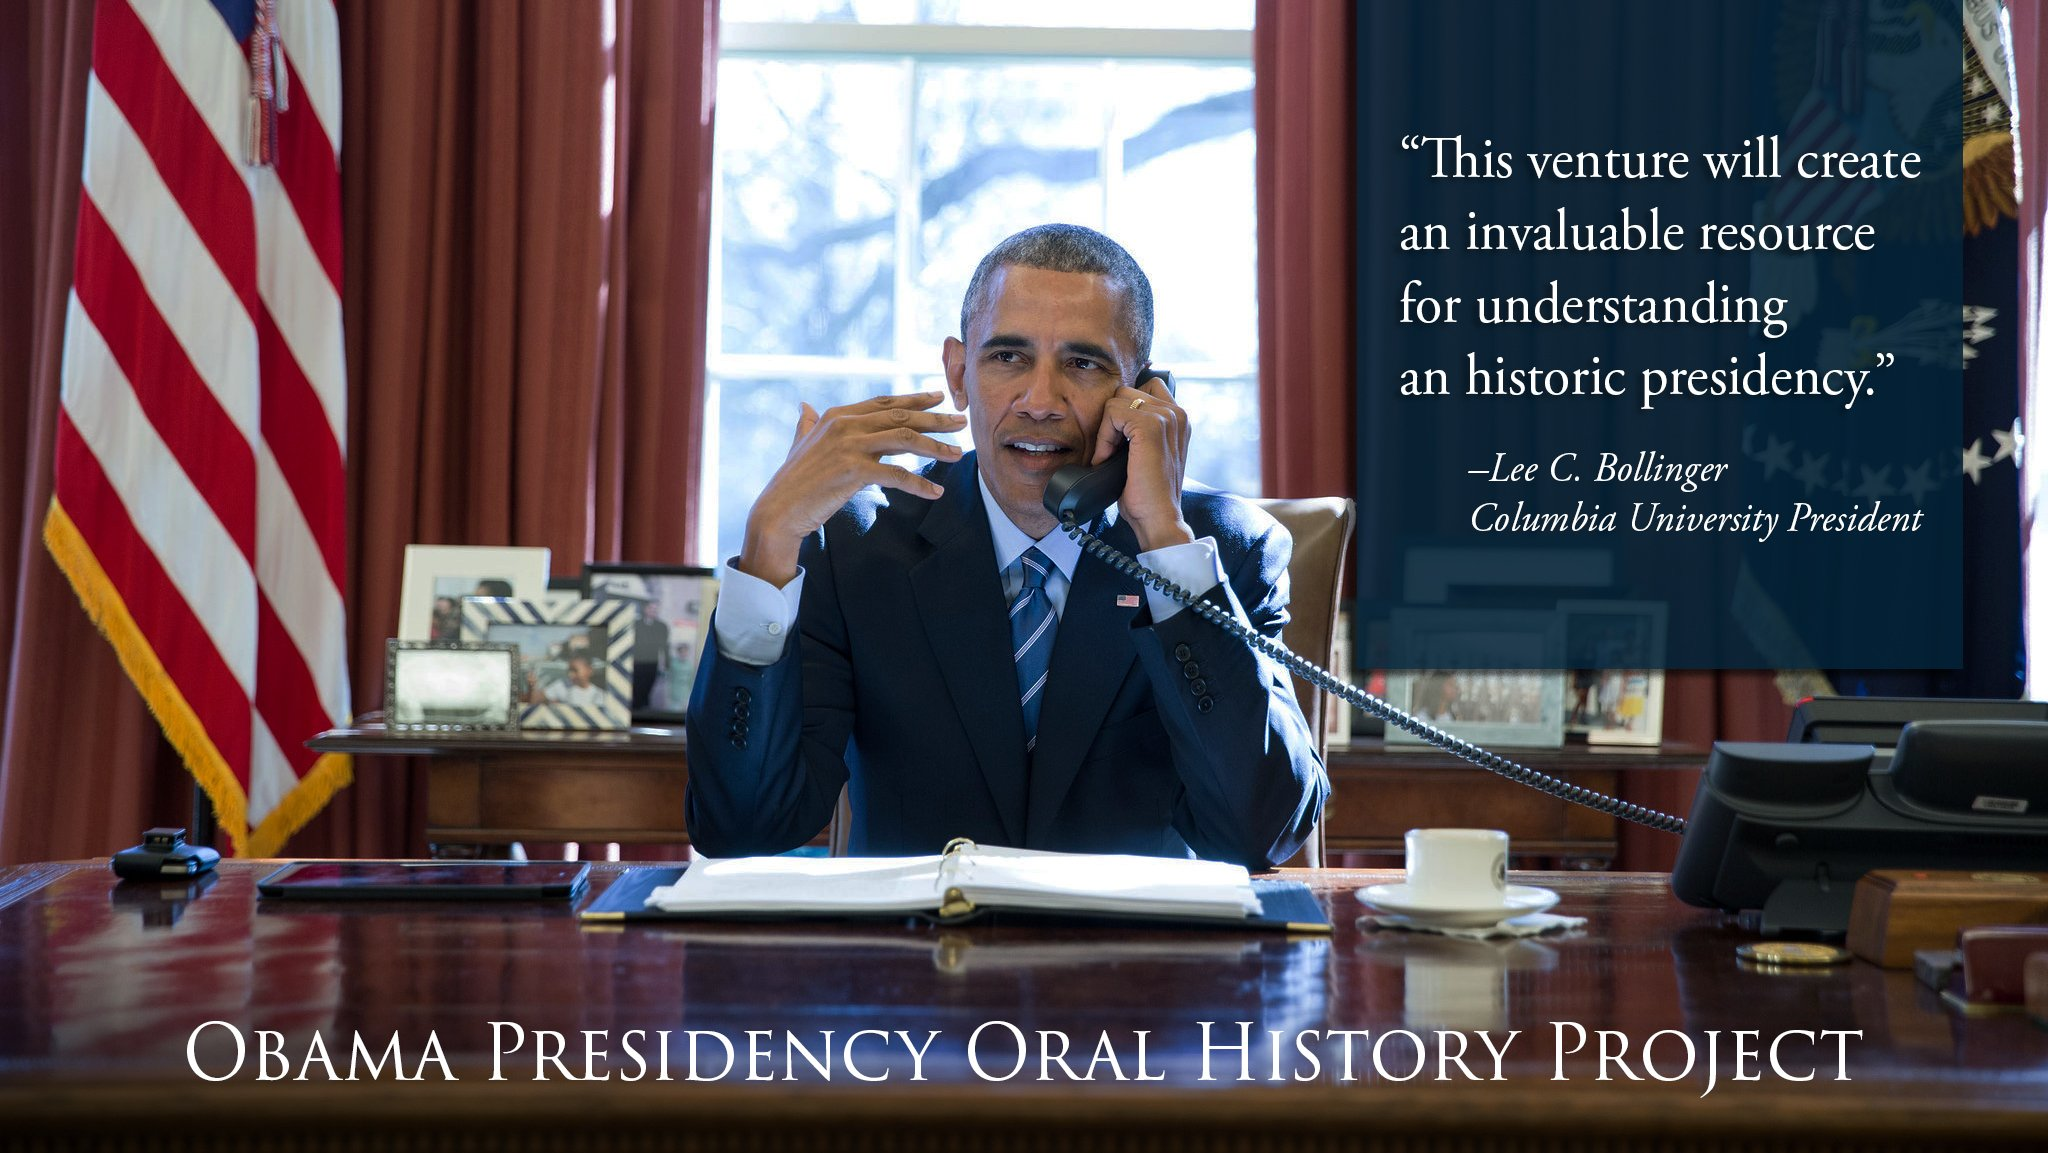 President Obama on the phone at his desk in the Oval Office with quote from President Bollinger about the value of oral history to understanding the presidency